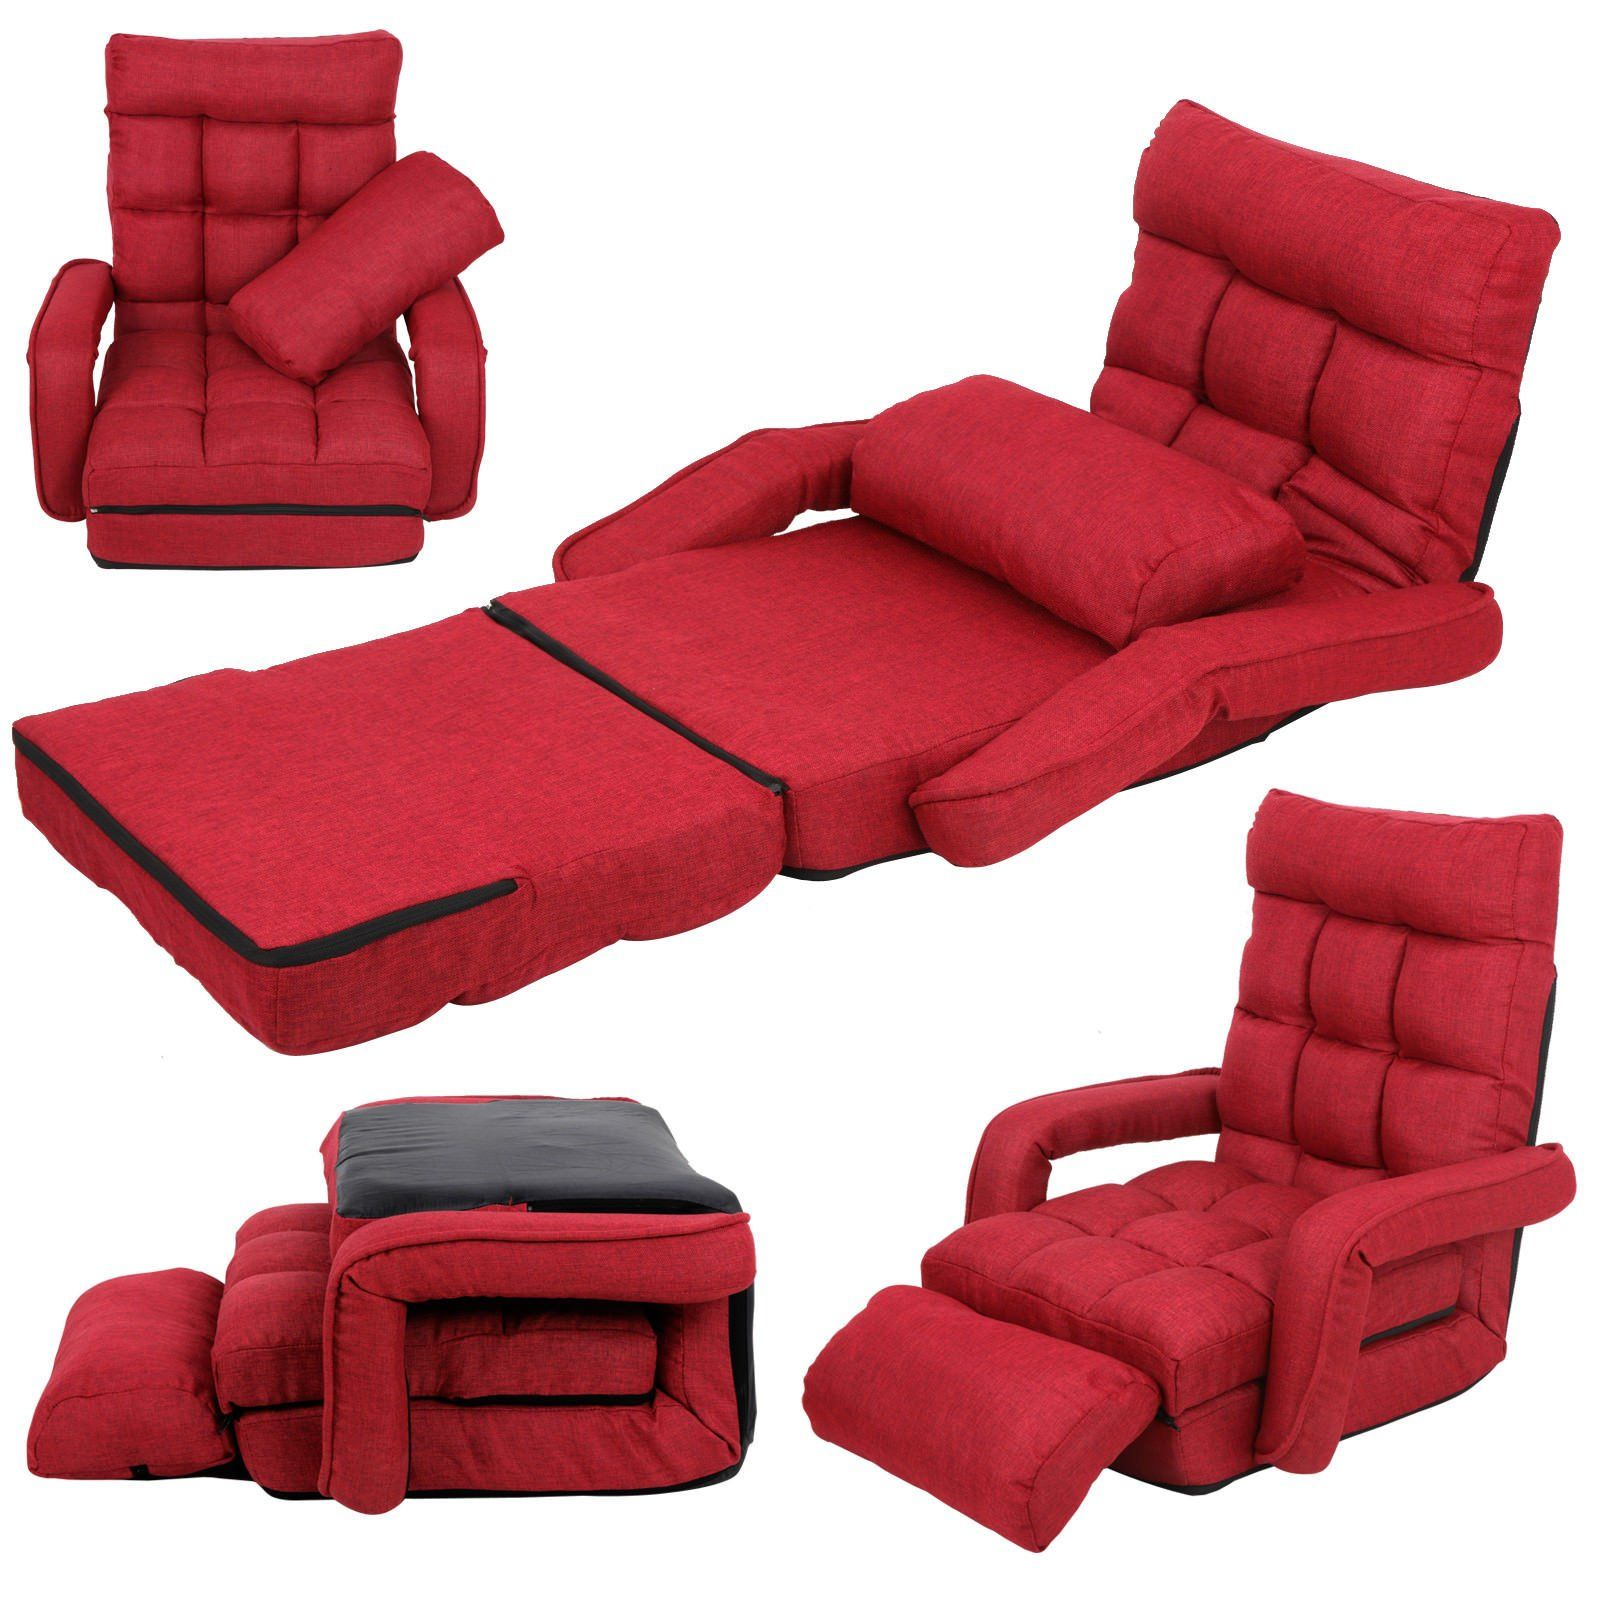 Red Adjustable Folding Lazy Sofa Floor Chair Sofa Lounger ...